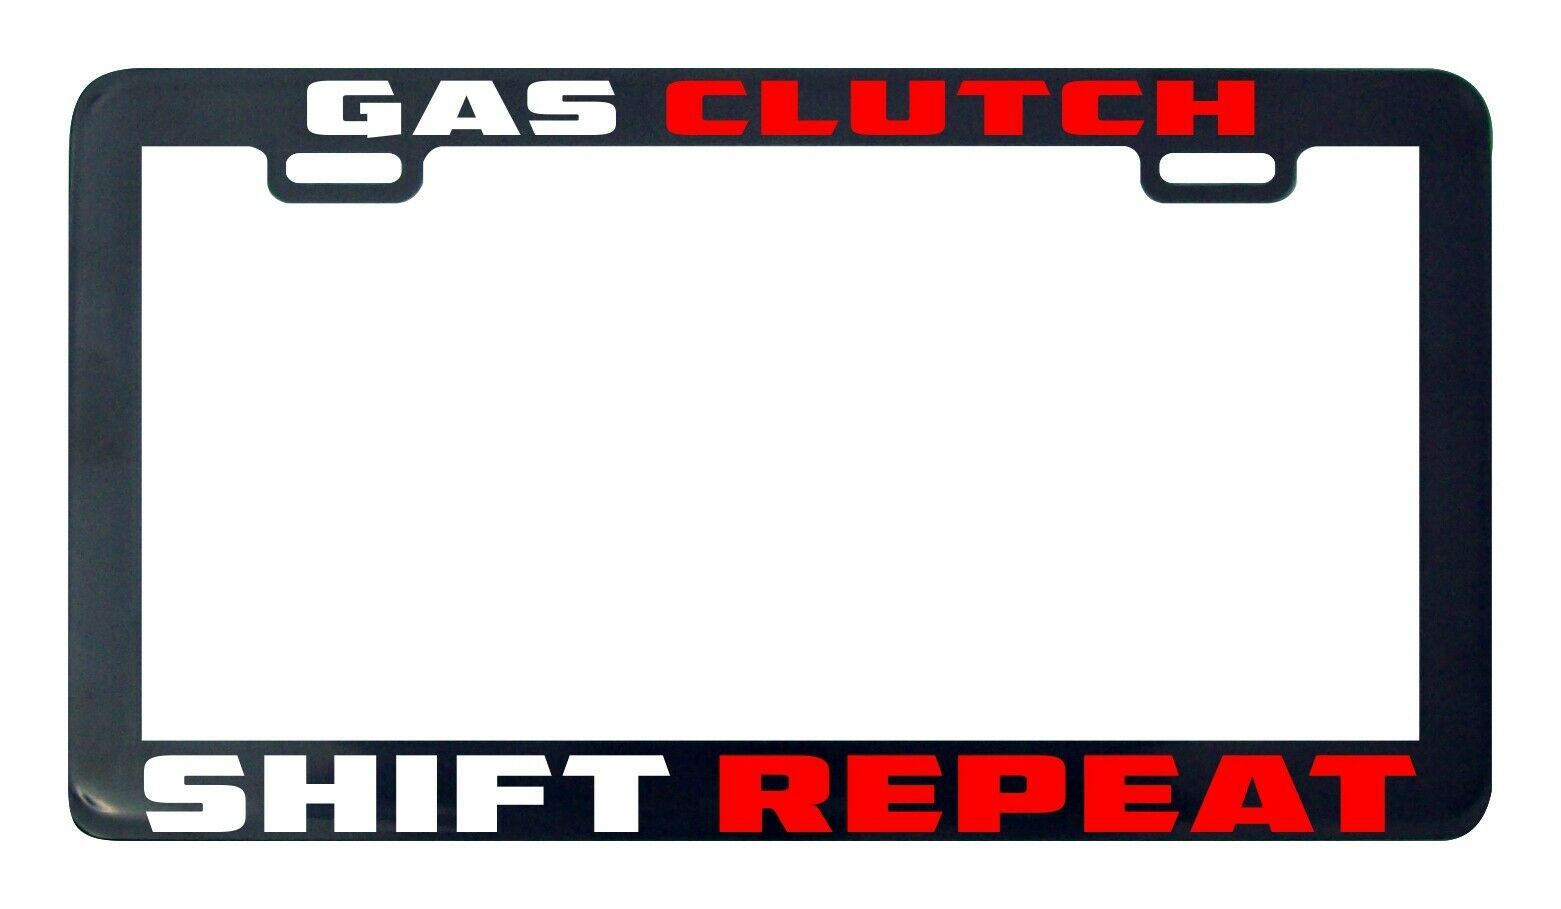 Primary image for Gas clutch shift repeat Type R JDM Japan license plate frame holder